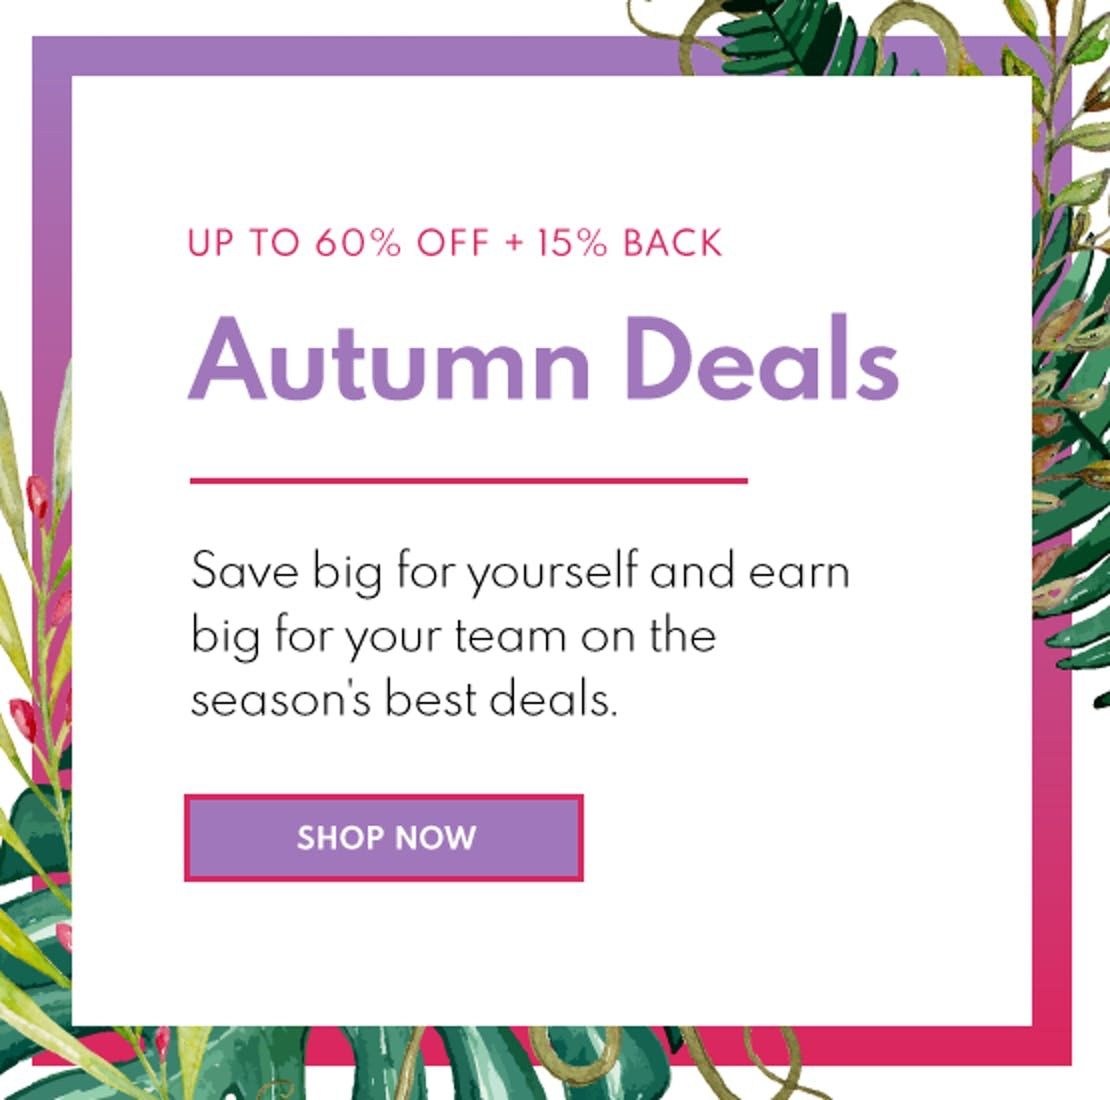 Autumndeals 2up